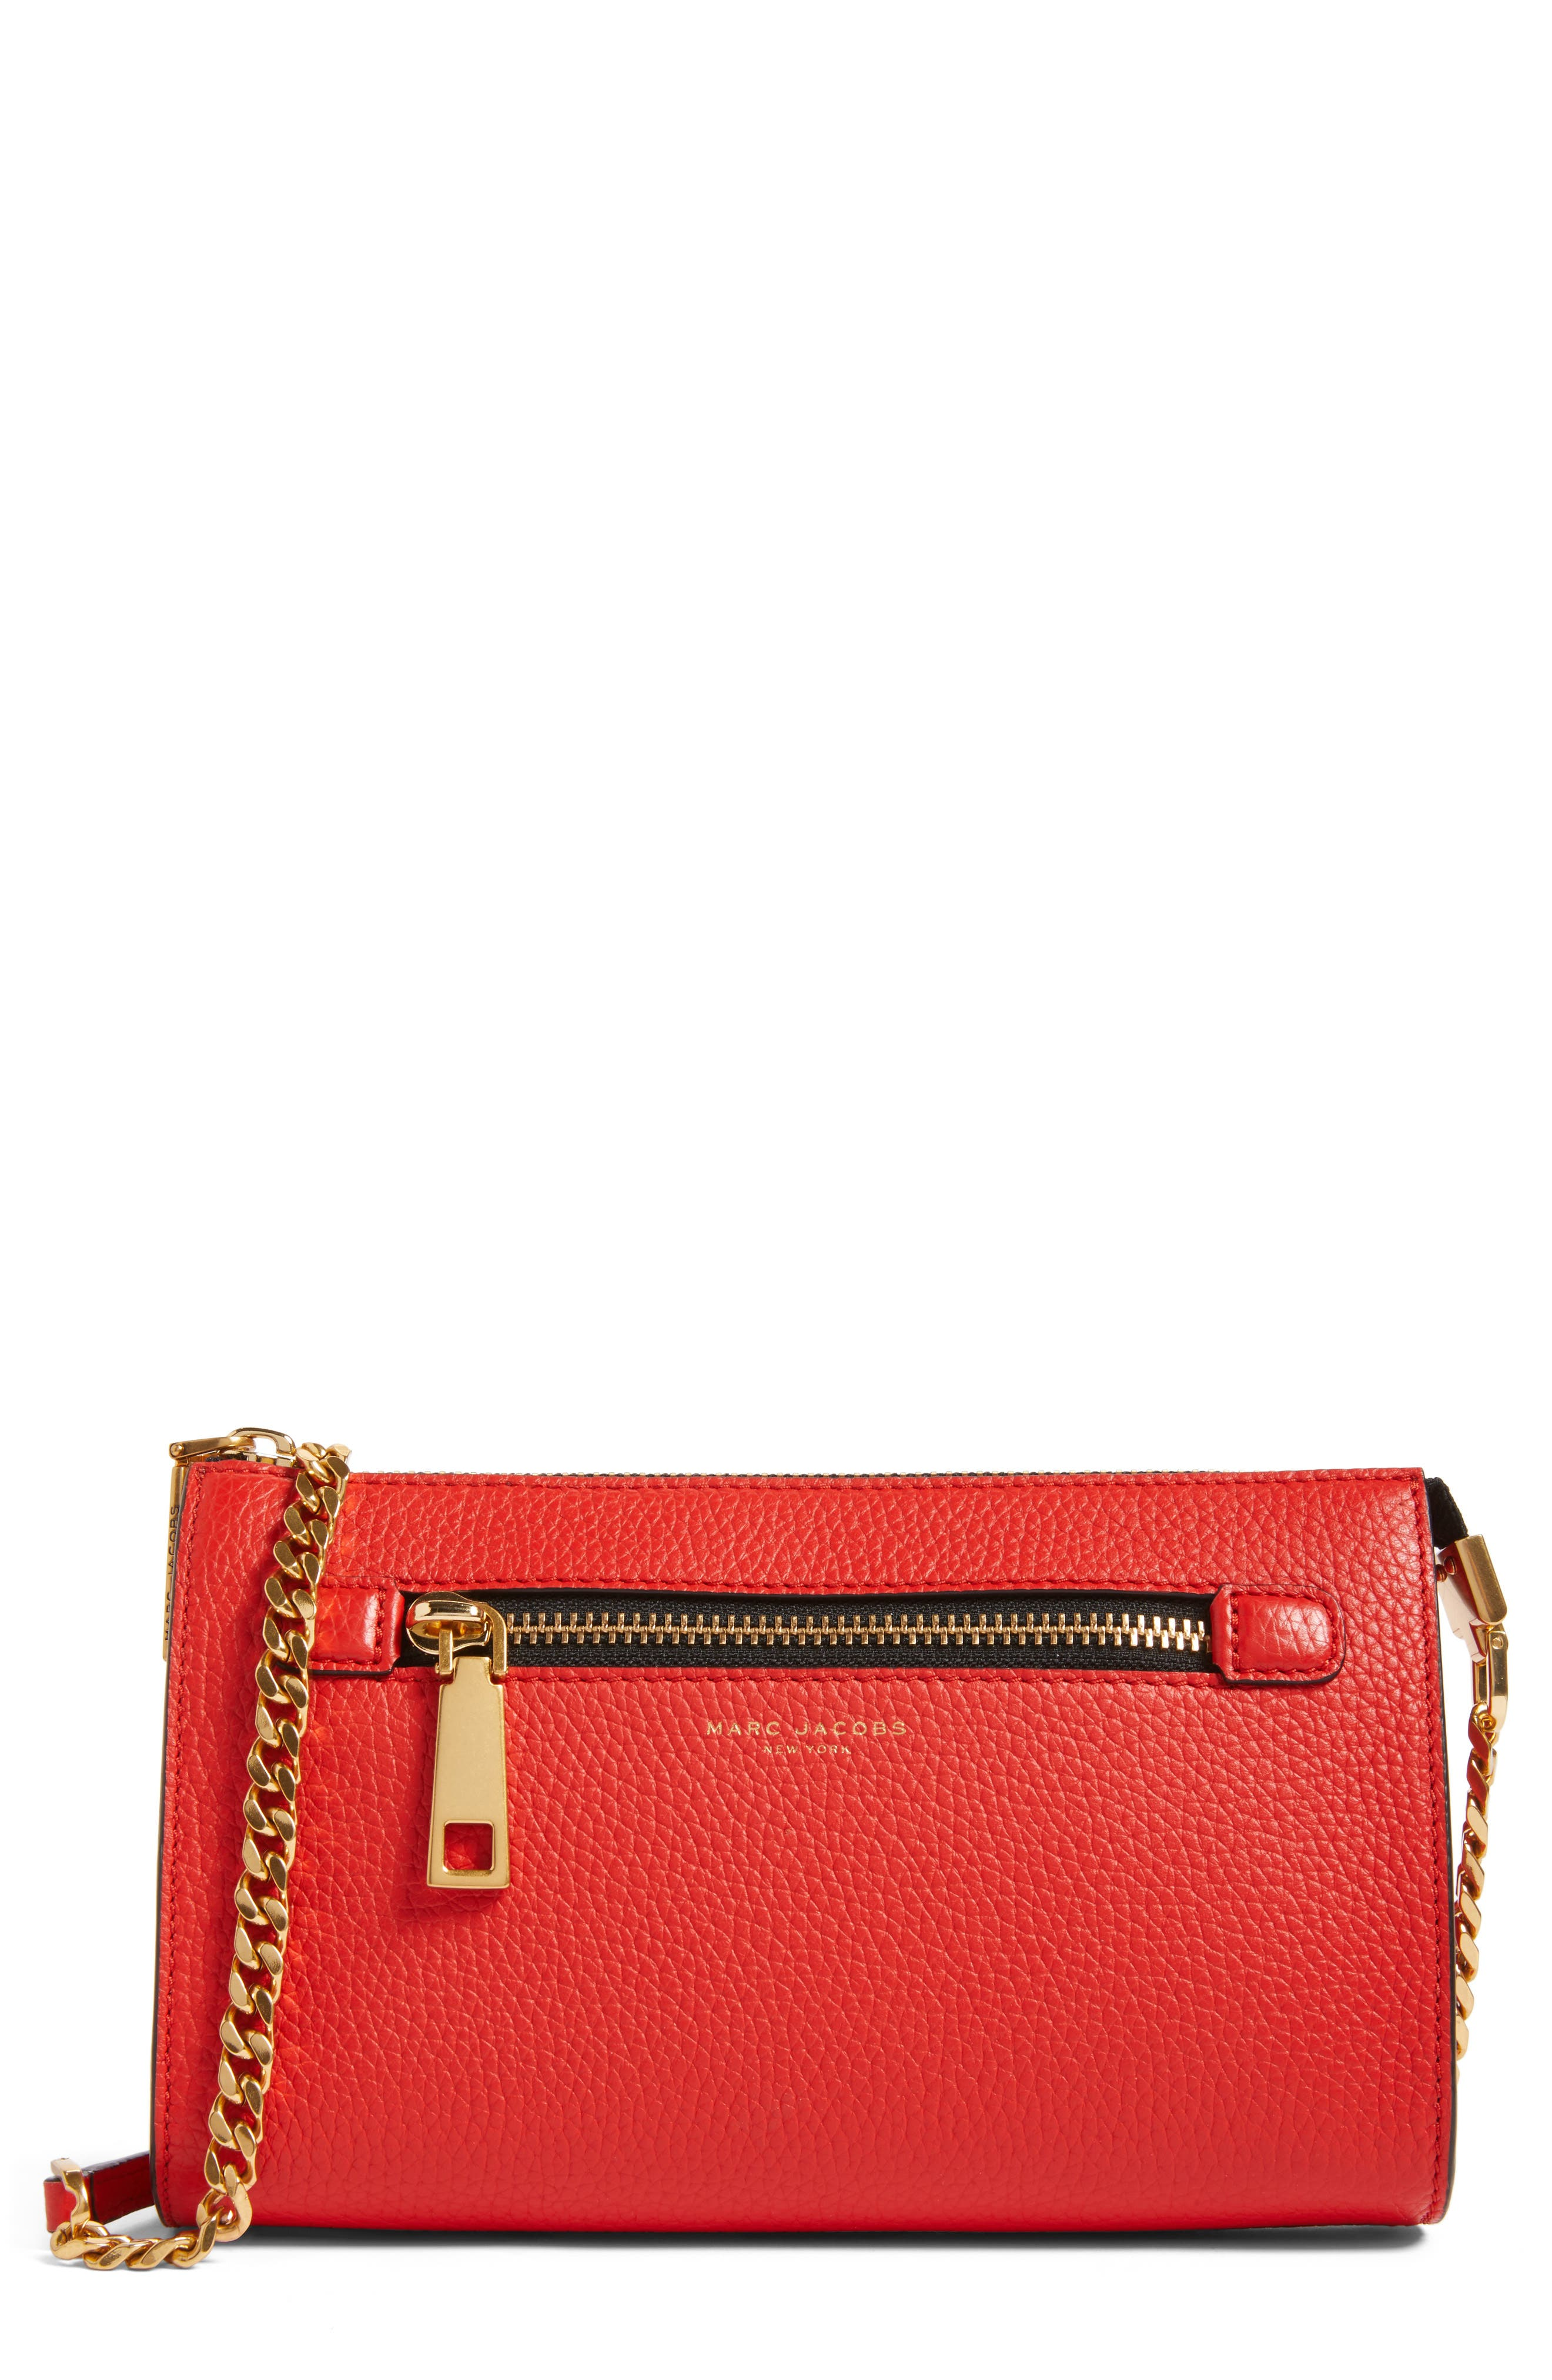 MARC JACOBS Small Gotham Leather Crossbody Wallet